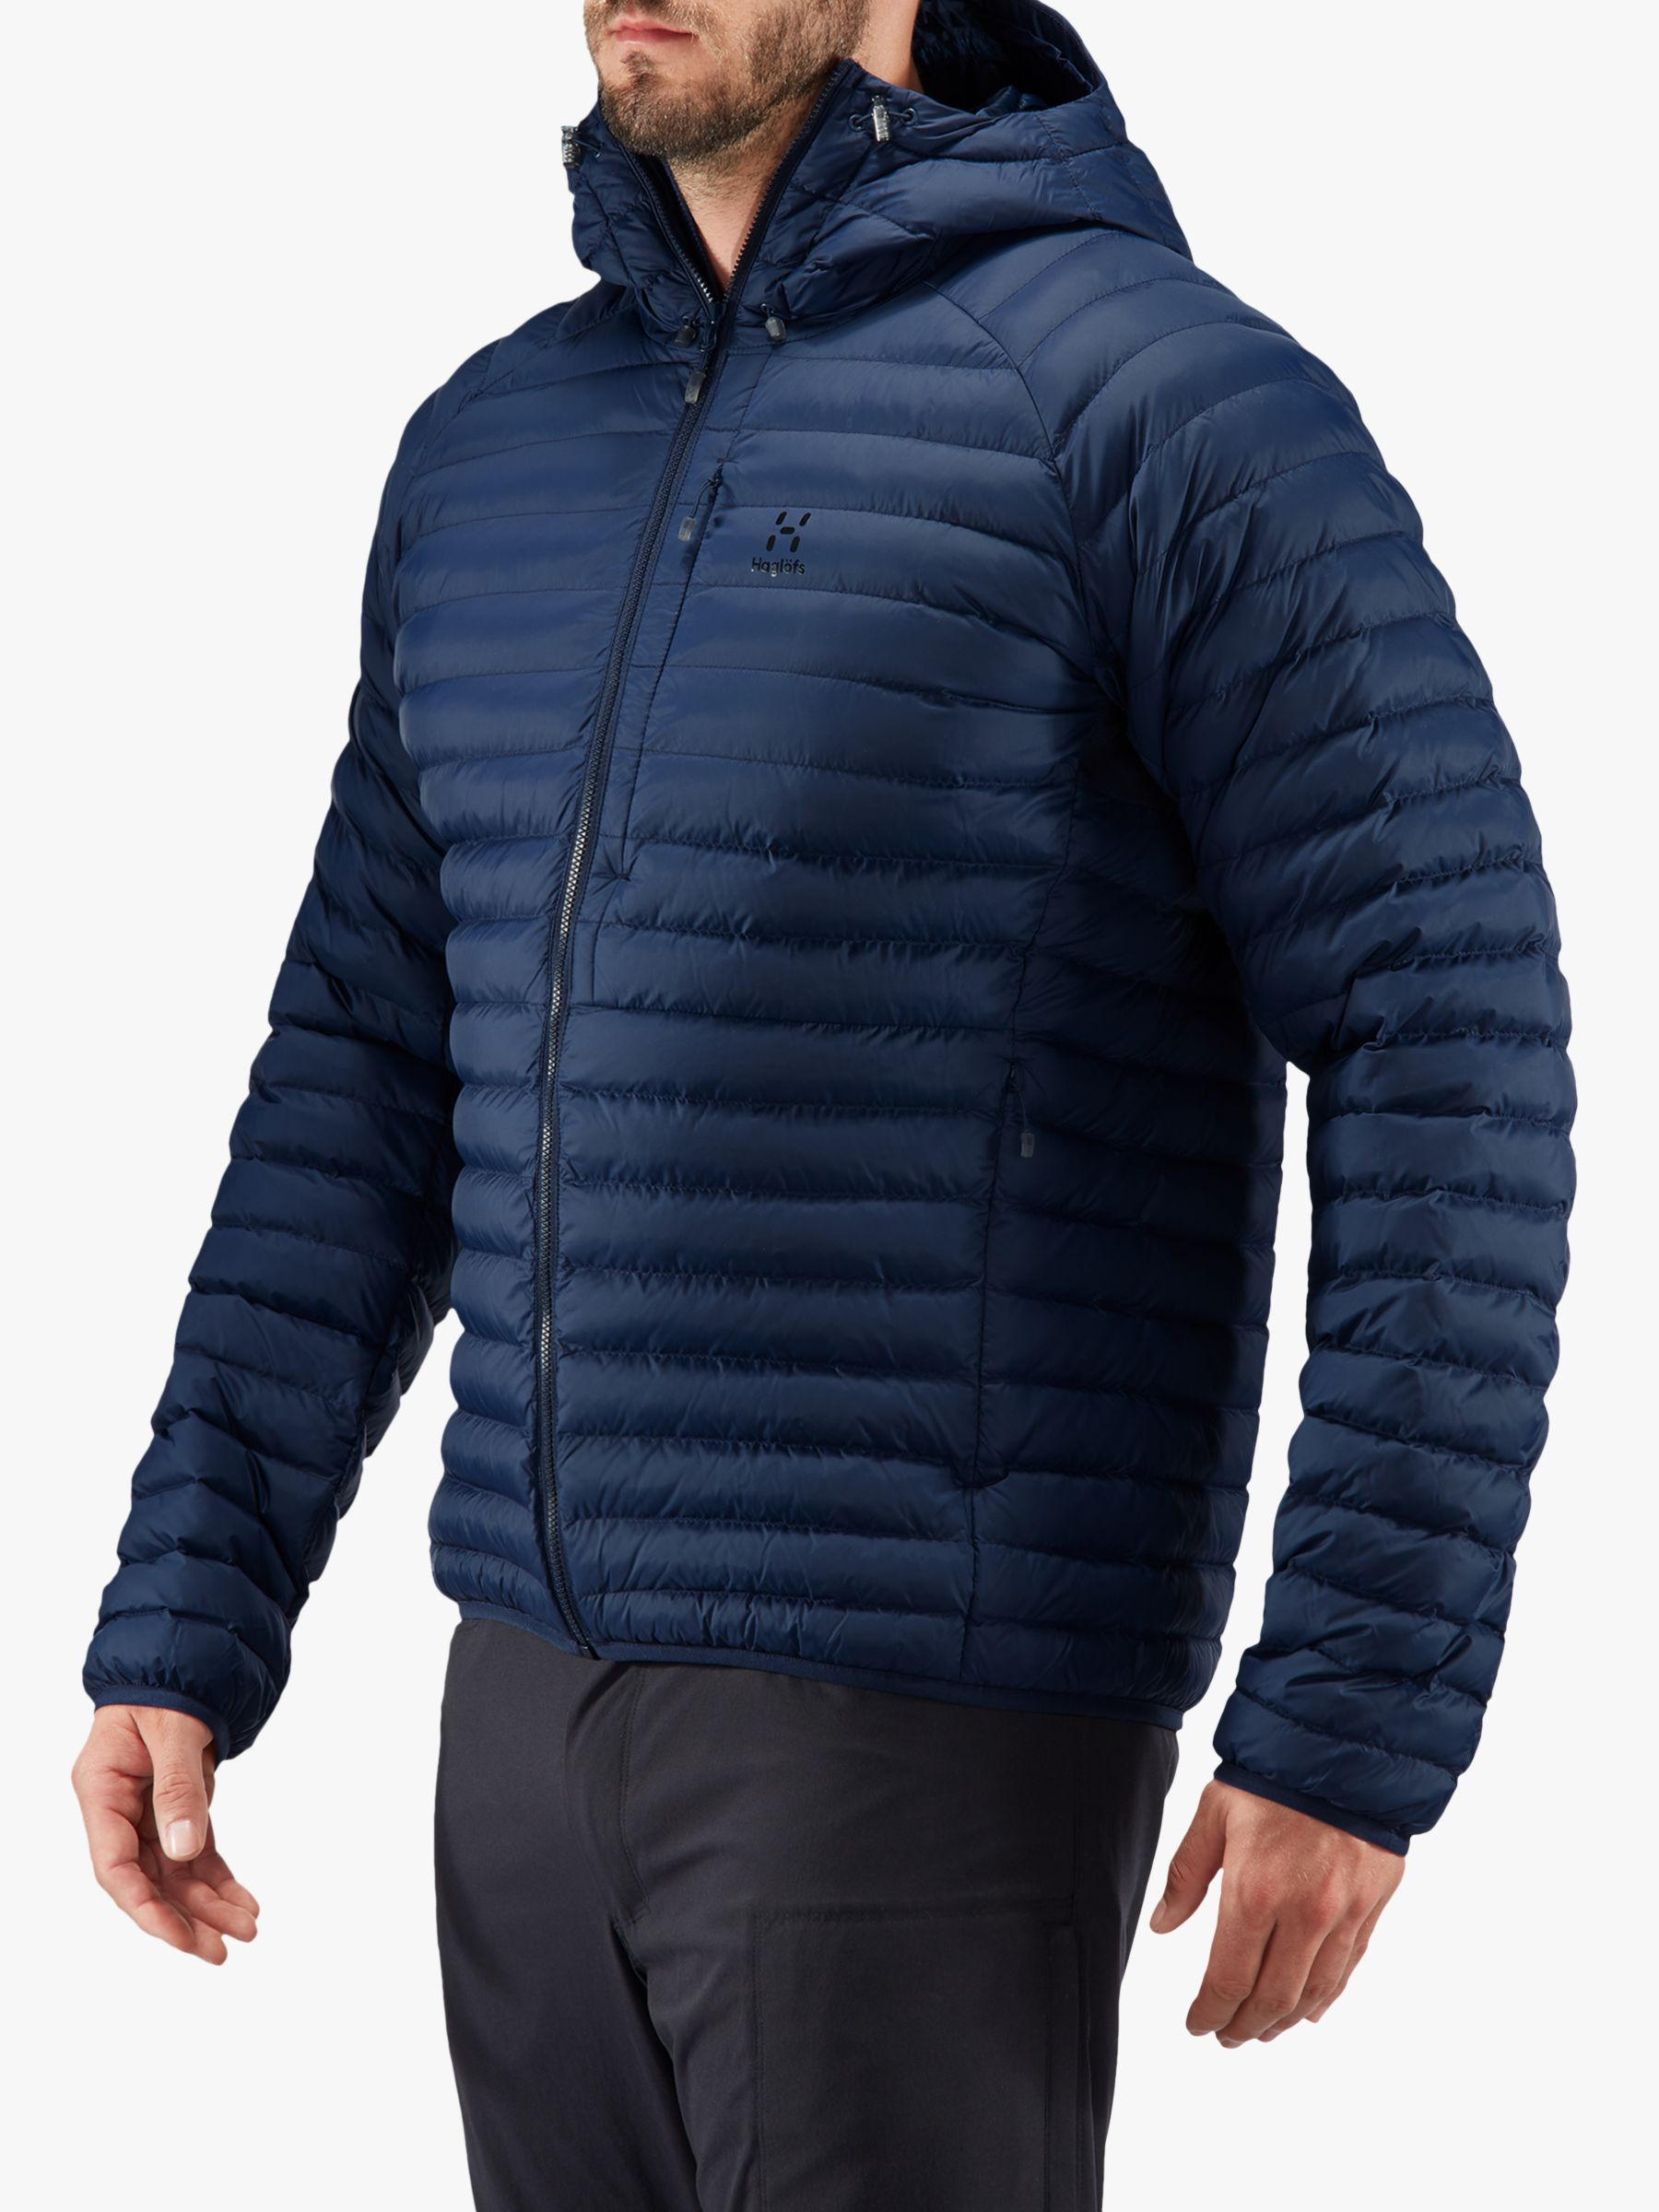 Haglofs Haglöfs Essens Mimic Men's Insulated Quilted Jacket, Tarn Blue